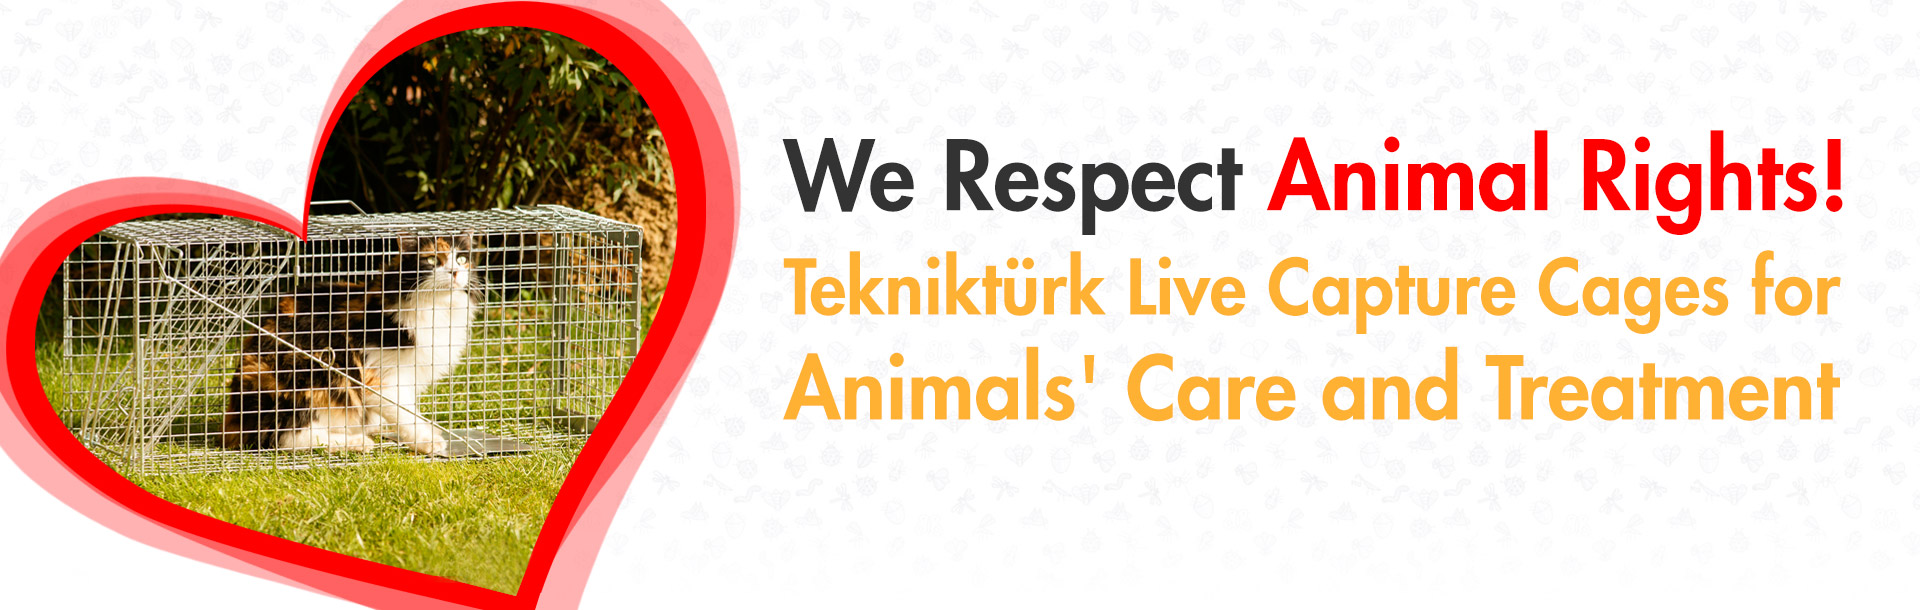 We Respect Animal Rights! Teknikturk Live Capture Cages for Animals' Care and Treatment